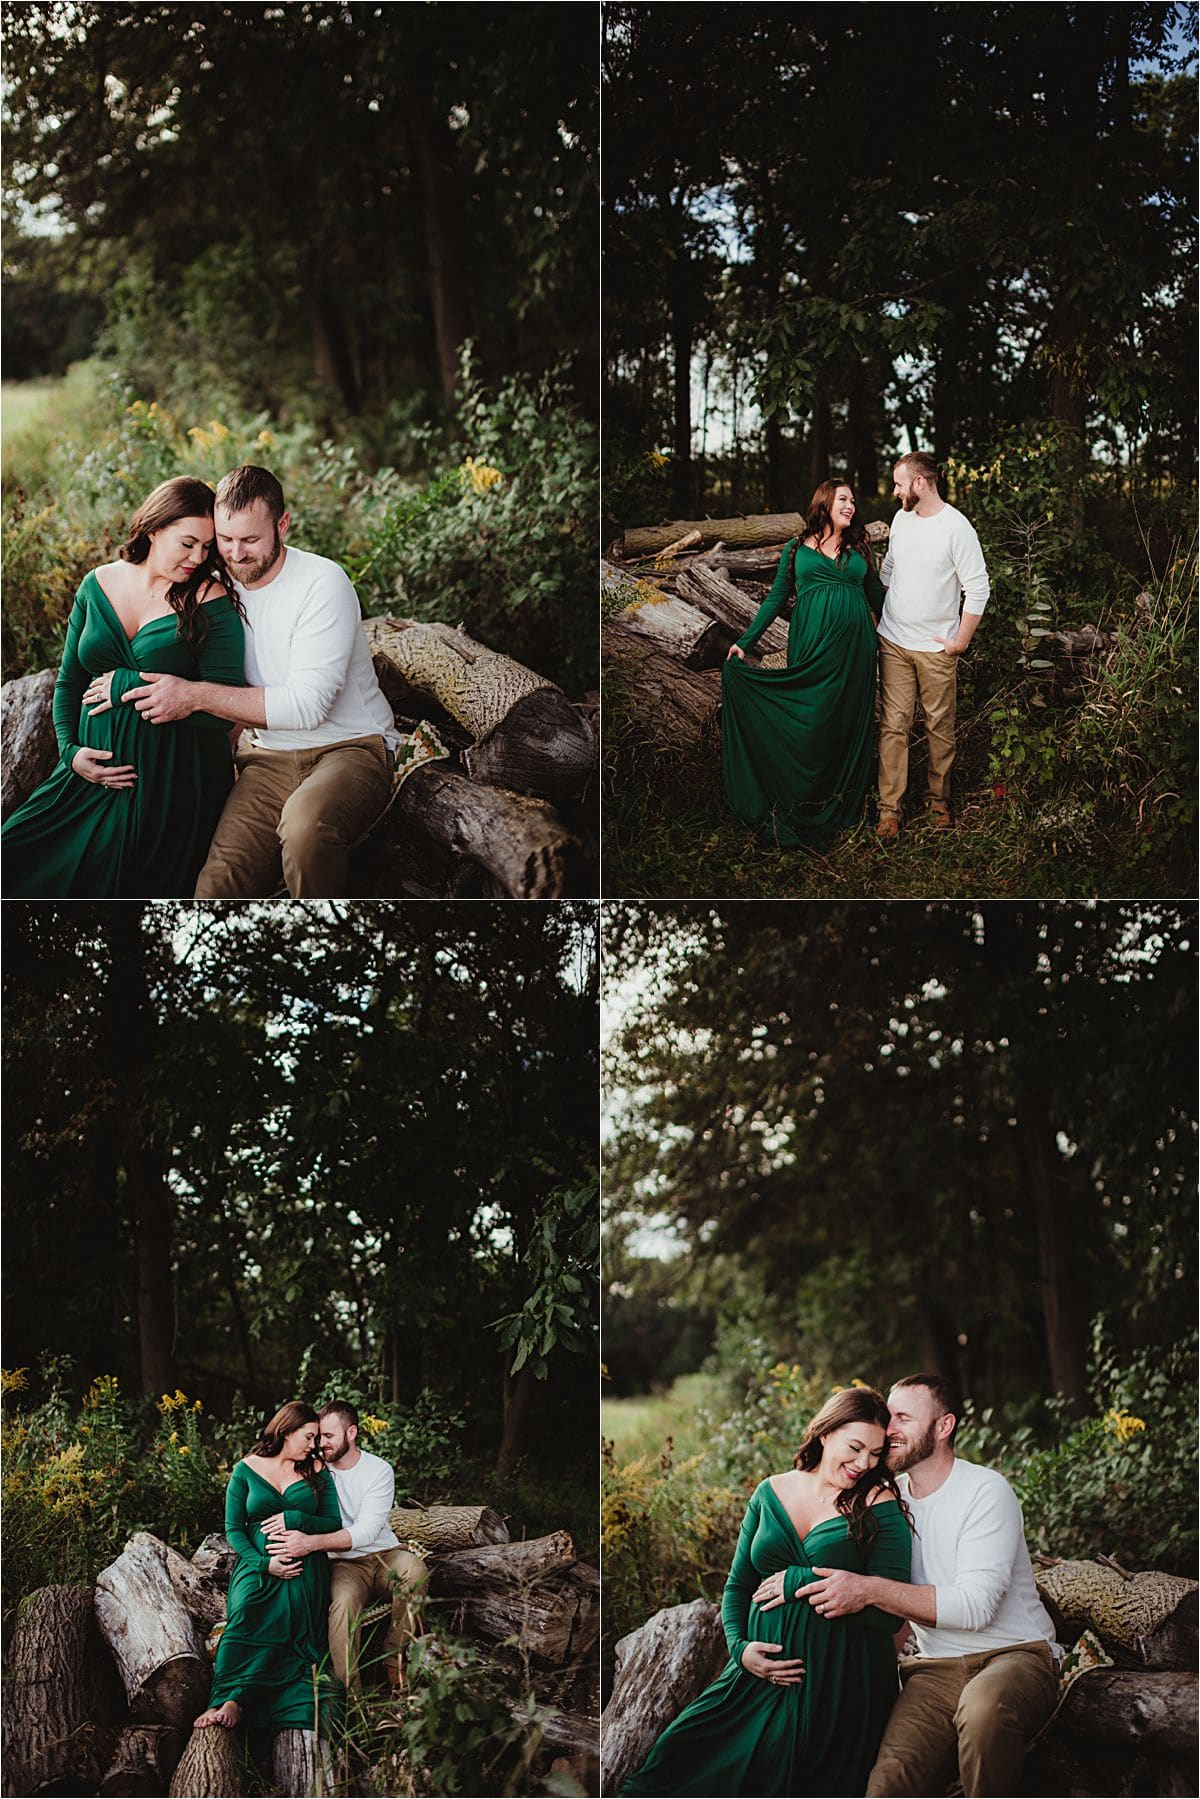 Summer Maternity Session Couple Snuggling